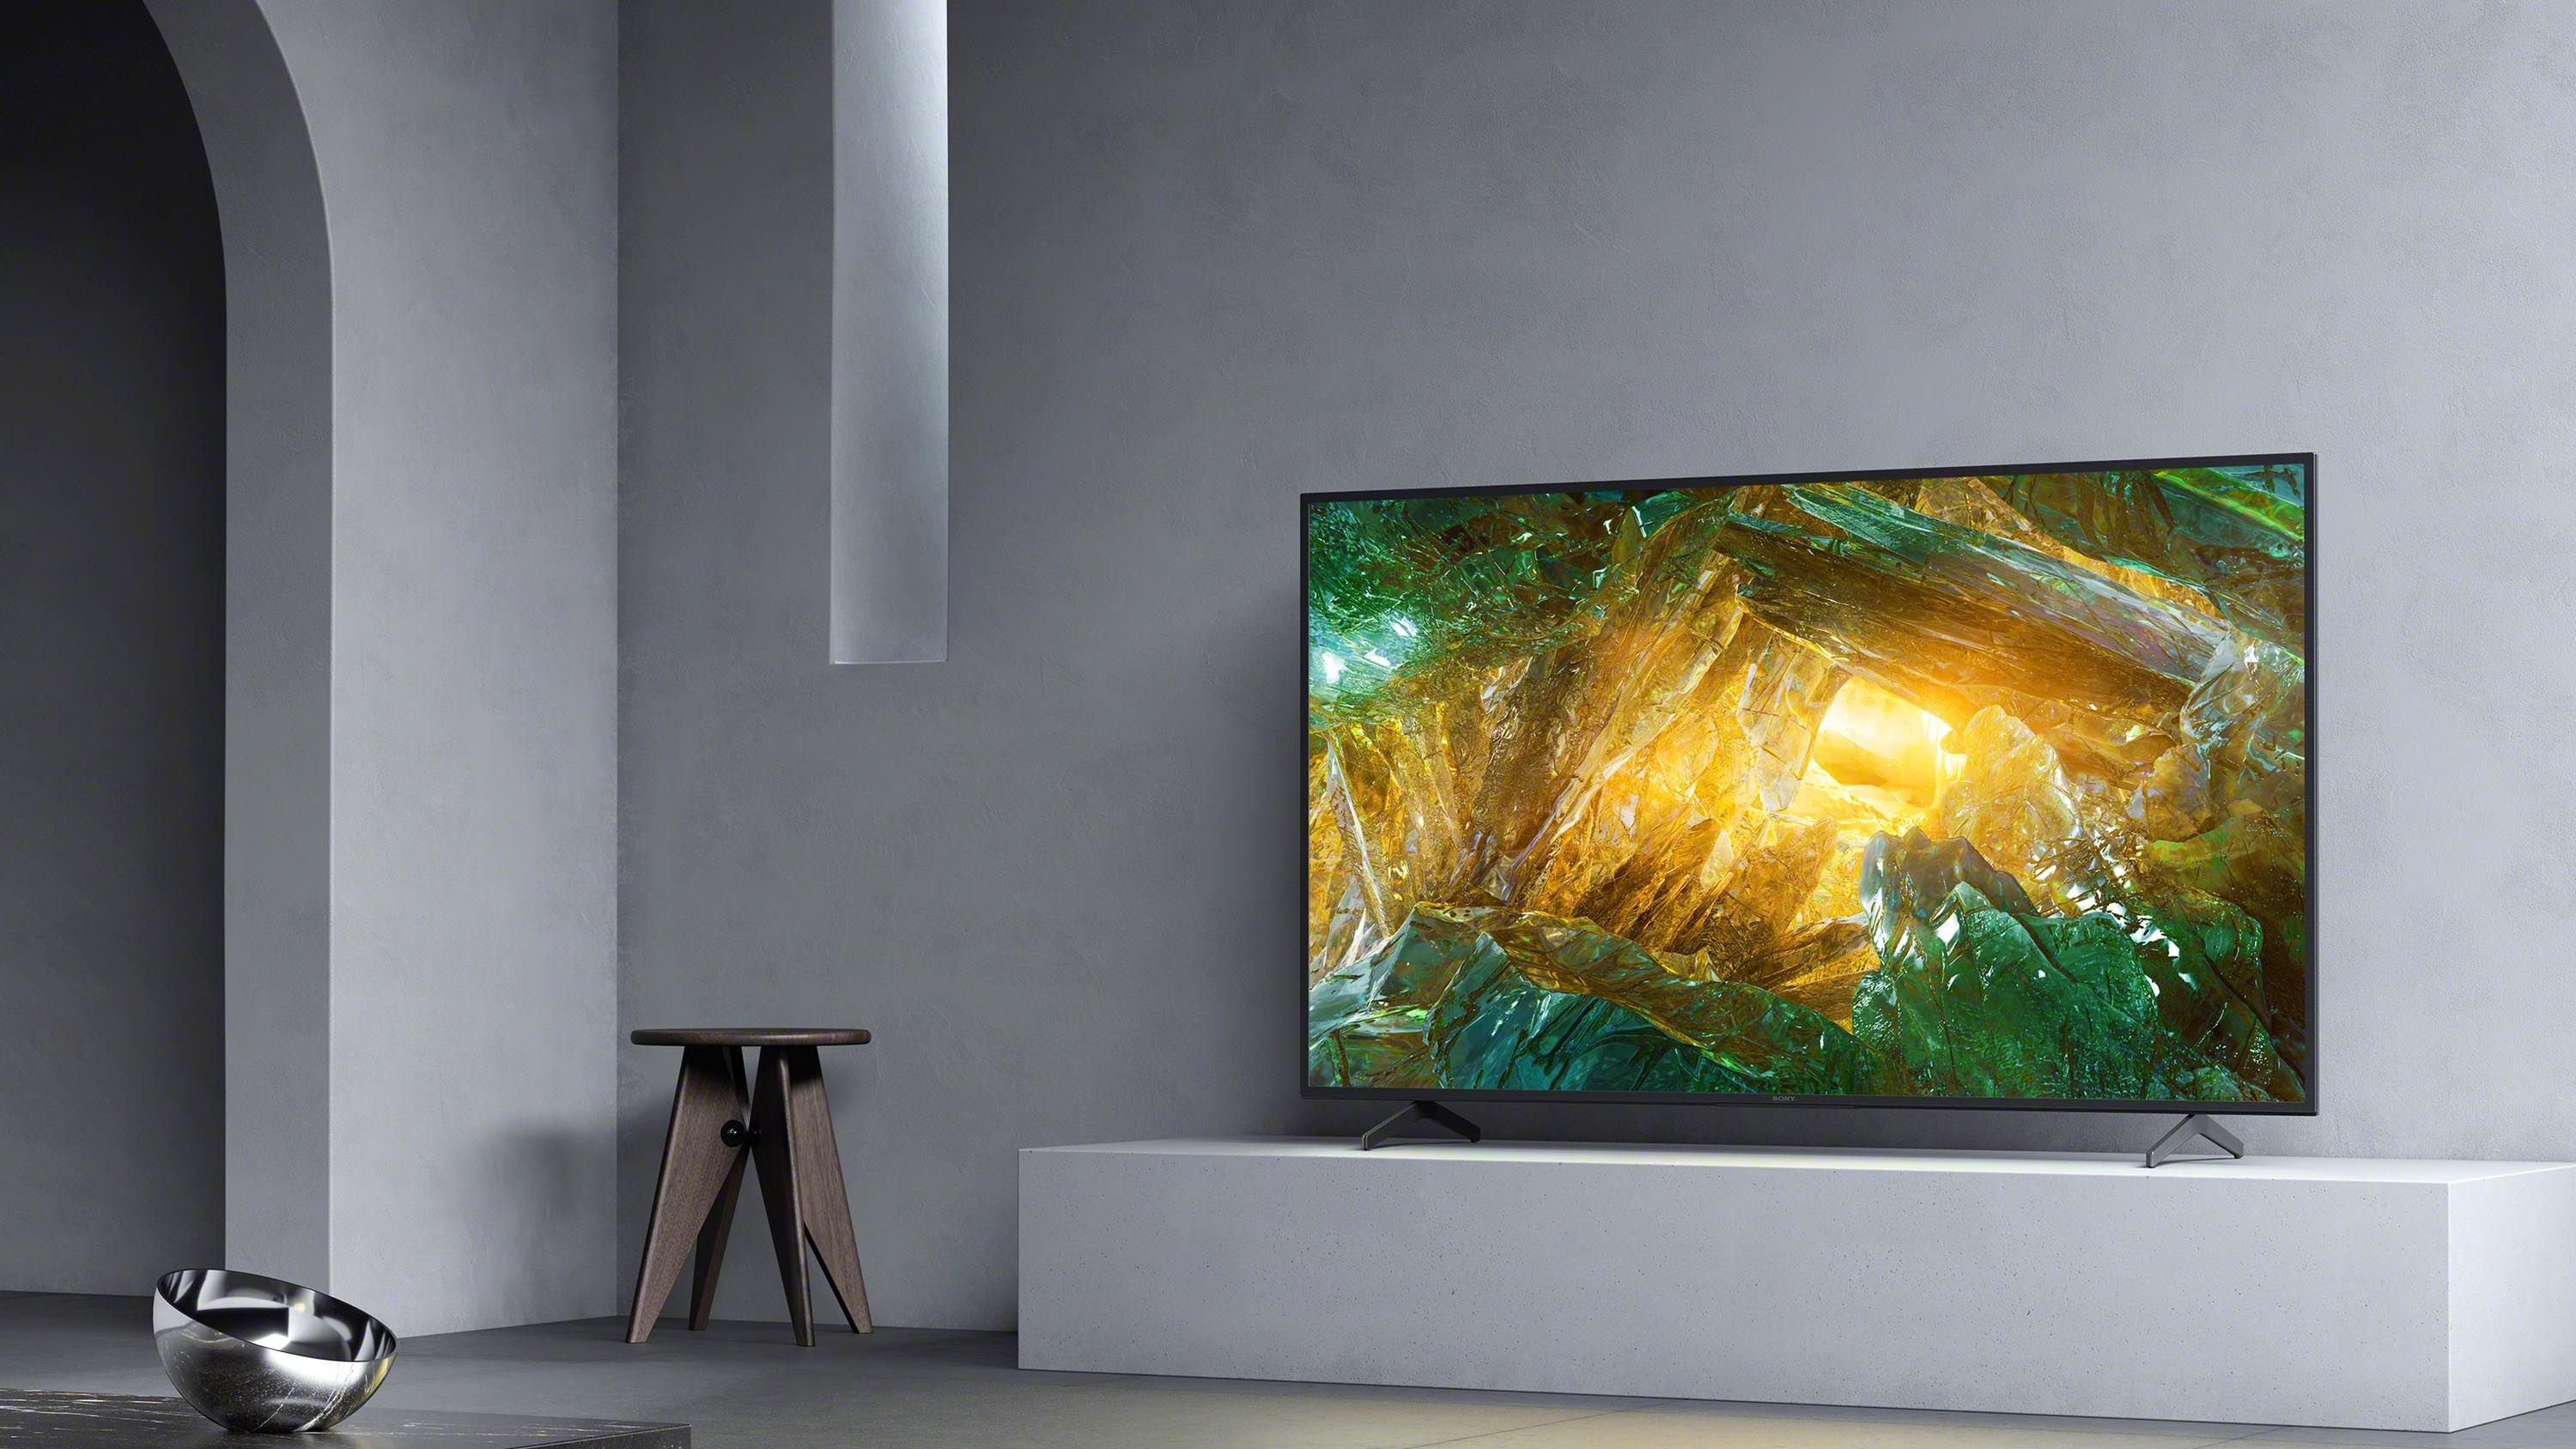 You Can Buy A New Sony 4k Tv Now As First 2020 Models Hit The Market In 2020 Sony Tv 4k Tv Sony